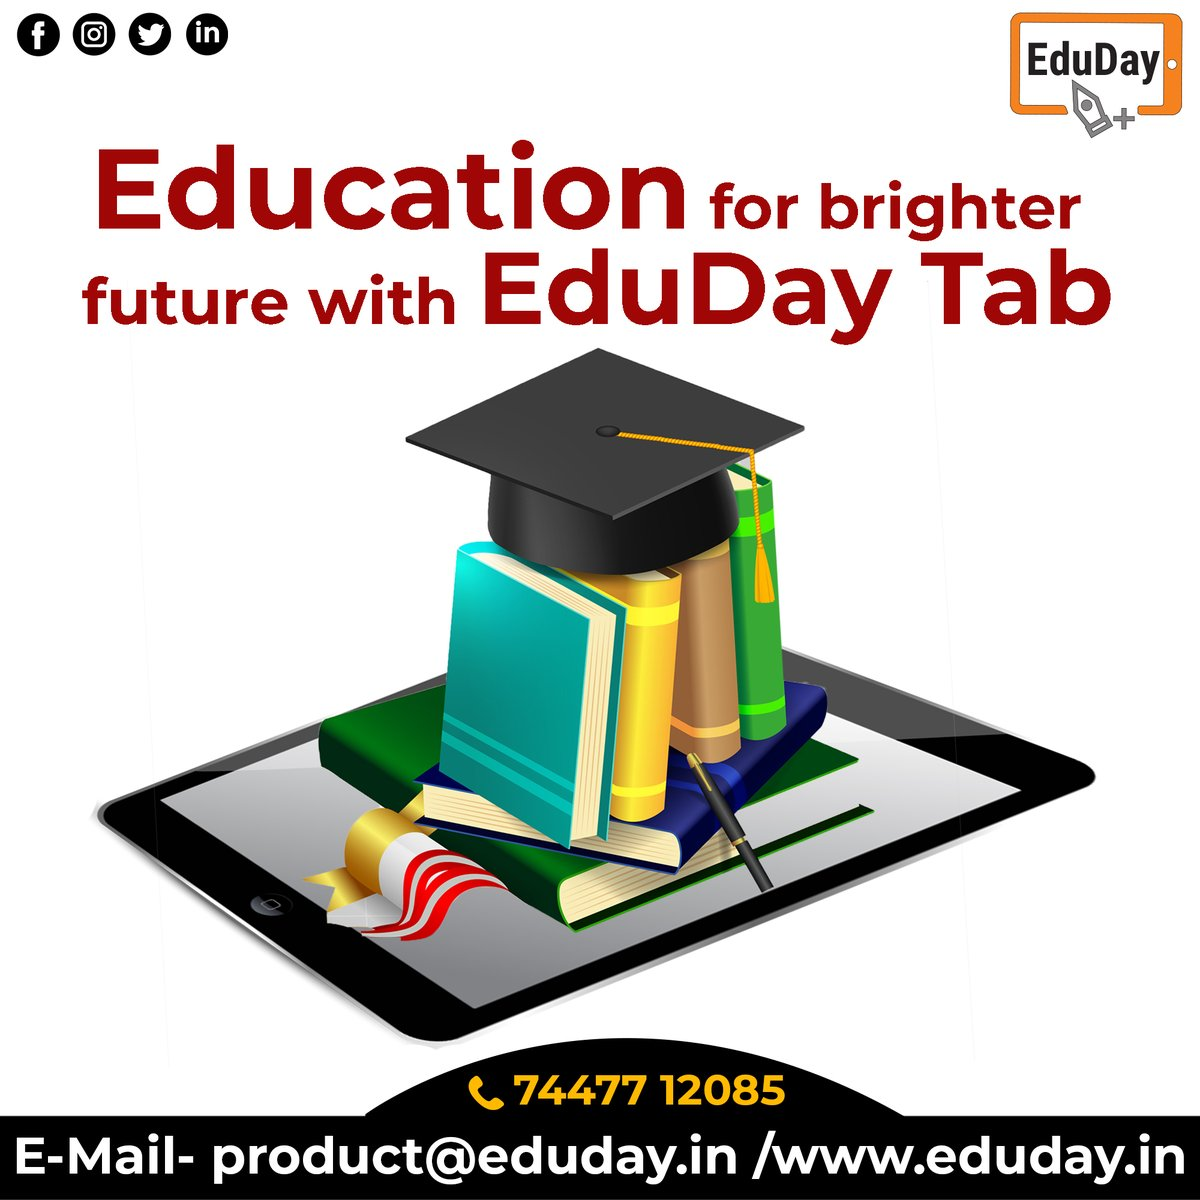 Transform Teaching, Inspire Learning and Deliver a world-class Student Experience.  Get in touch to know more:- Phone : +91 7447712085 E-Mail: product@eduday.in visit:- http://www.eduday.in   #eduday #edudayindia #pune #india #tab #tablets #CoachingInstitute #Coachingclassesspic.twitter.com/adWUiiFhAG